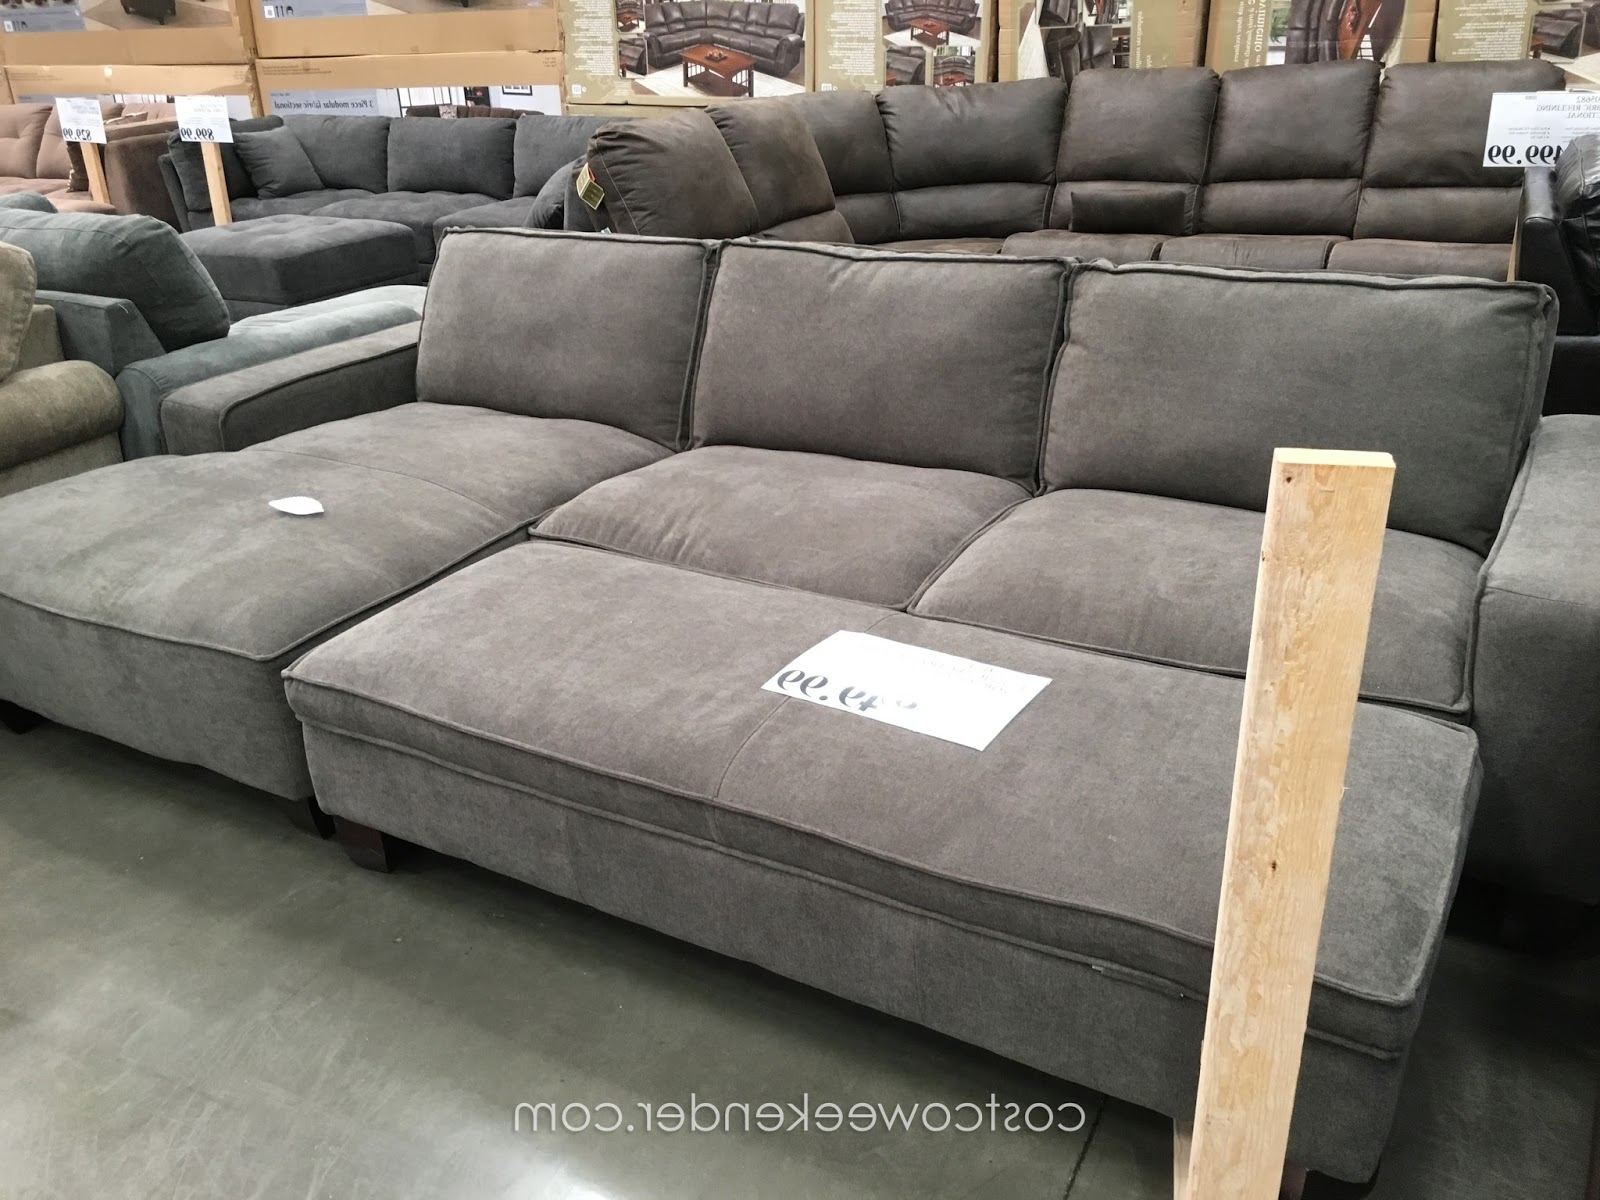 Most Up To Date Sectional Sofa Design: Costco Sectional Sofas Best Ever Leather Pertaining To Leather Sectionals With Ottoman (View 16 of 20)